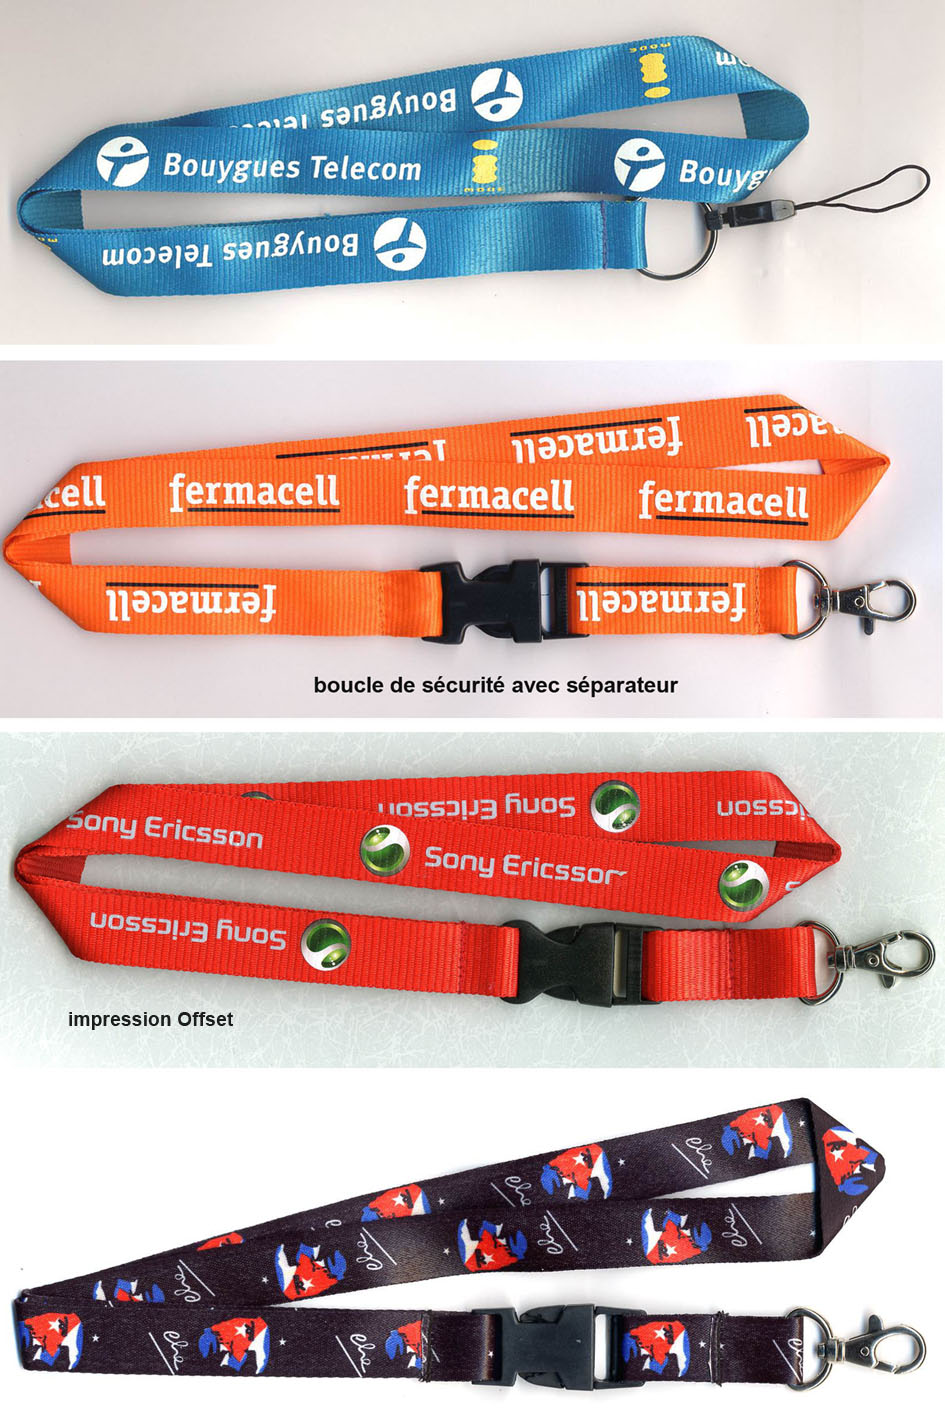 lanyards publicitaires, fabricant lanyards, lanyards polyester, lanyards tissu, objets publicitaires, fabricant importateur